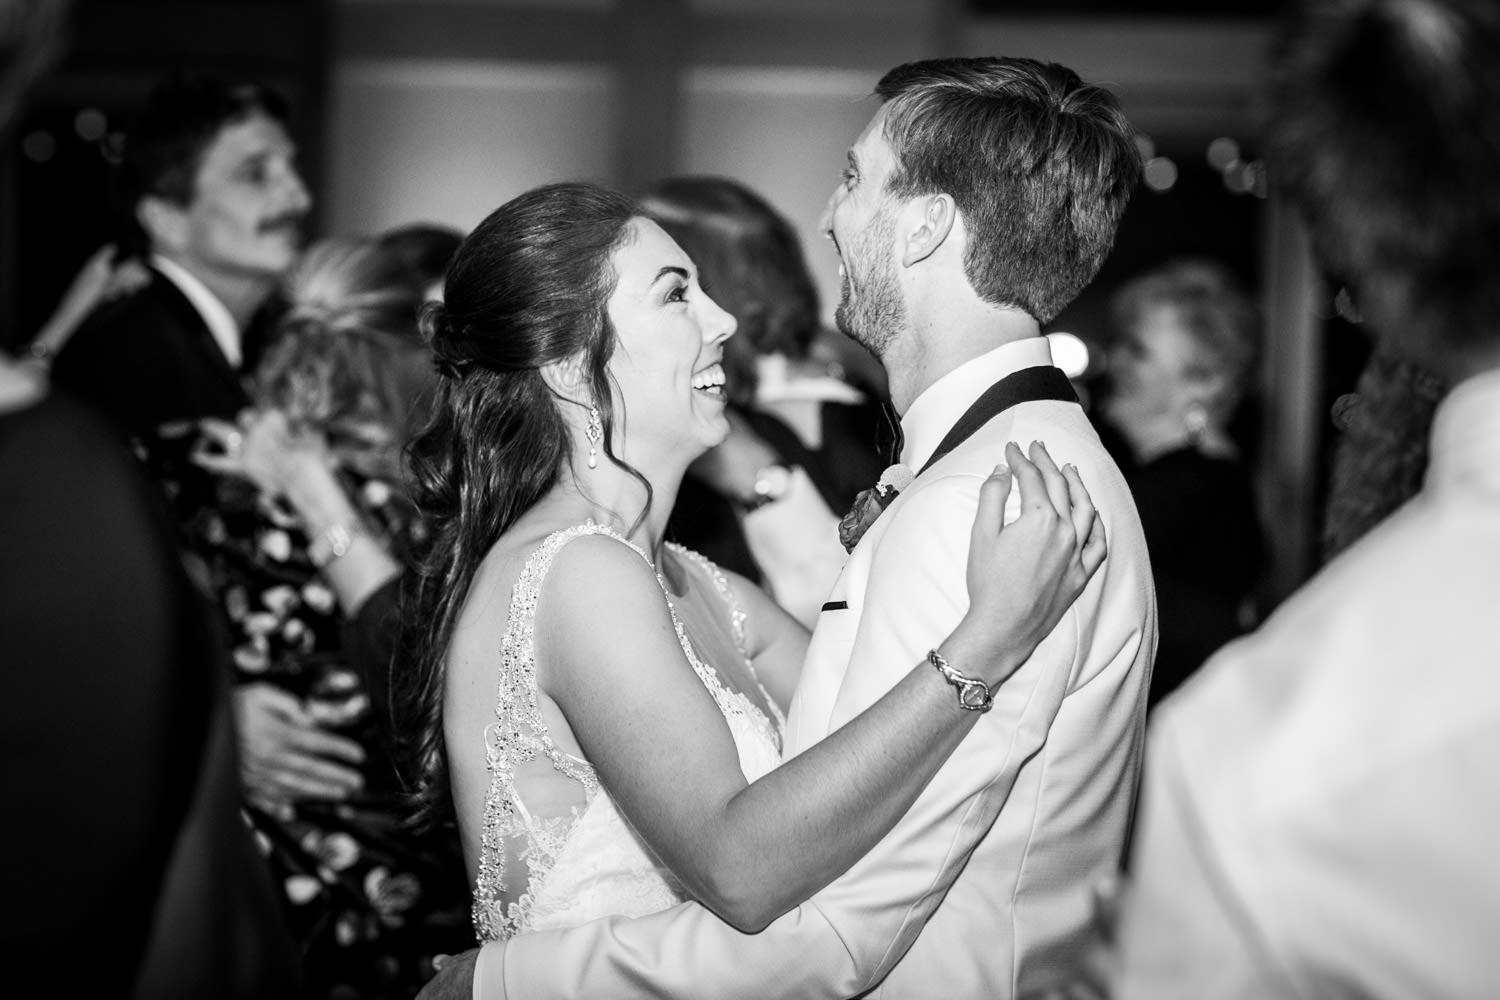 Bride and groom dancing at their wedding reception at the Coronado Community Center, Cavin Elizabeth Photography